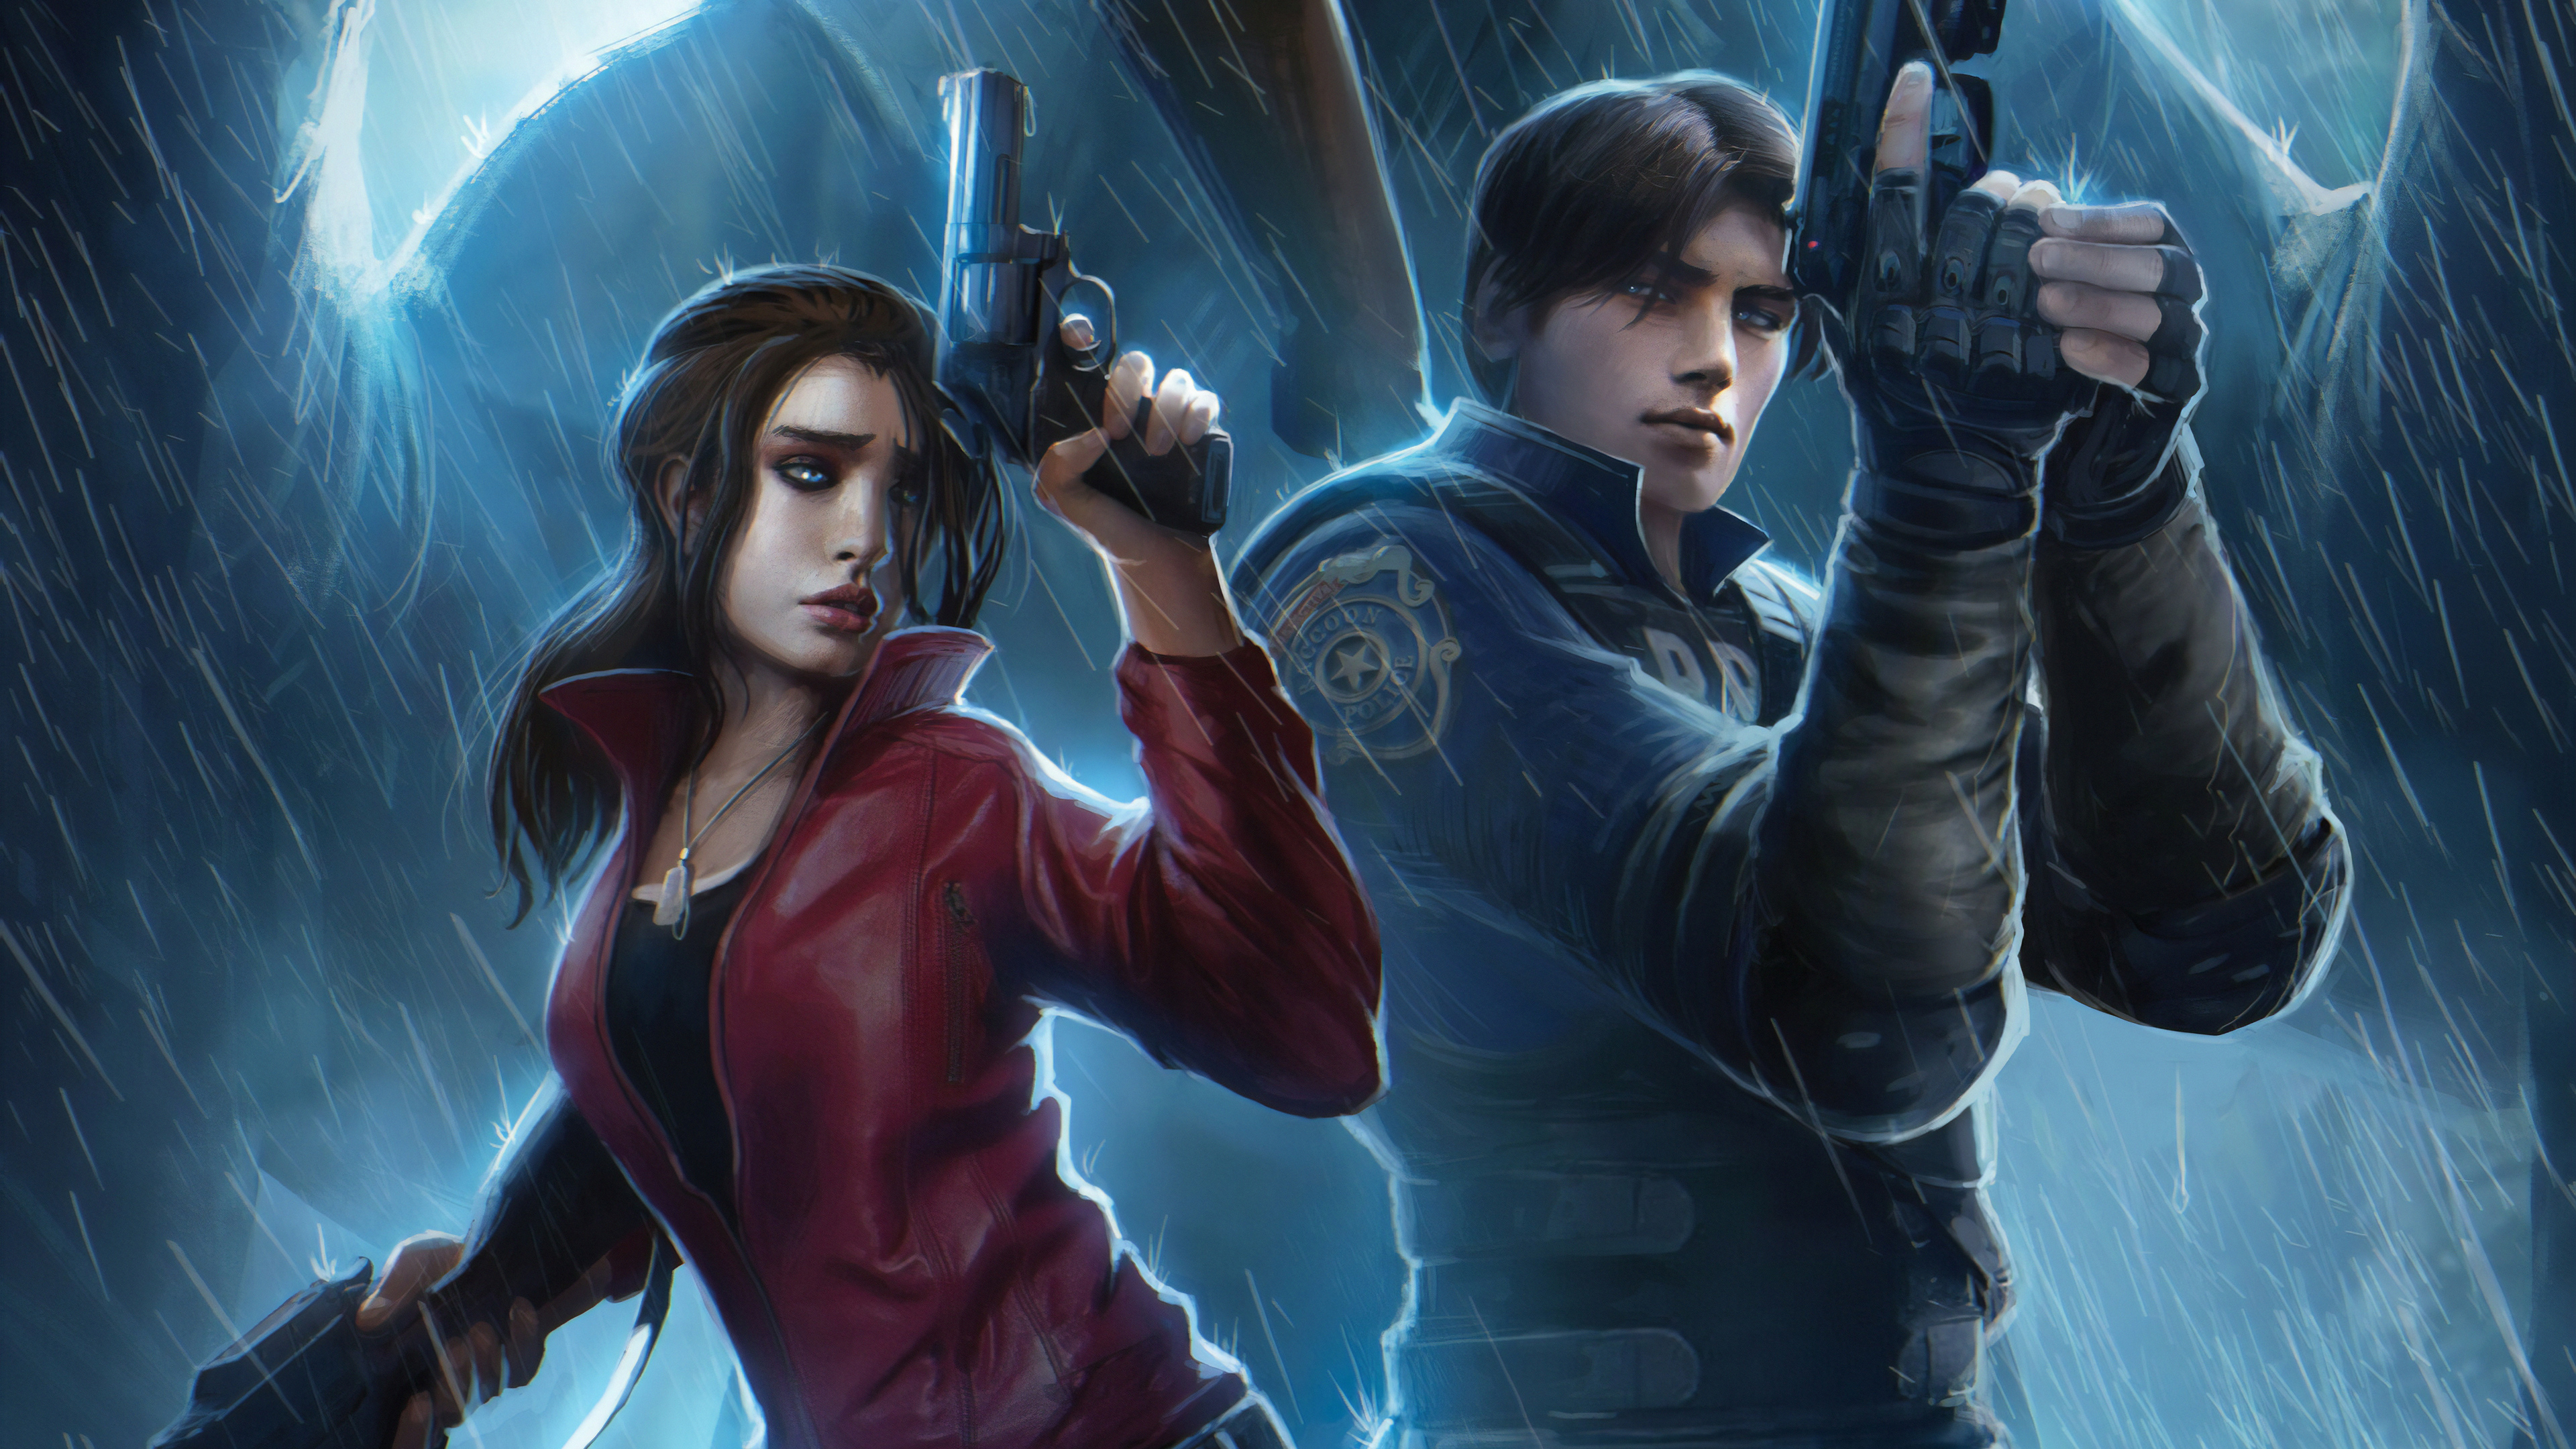 resident evil claire redfield chris redfield art 1568056385 - Resident Evil Claire Redfield Chris Redfield Art - resident evil 2 wallpapers, hd-wallpapers, games wallpapers, digital art wallpapers, claire redfield wallpapers, artwork wallpapers, artstation wallpapers, artist wallpapers, 4k-wallpapers